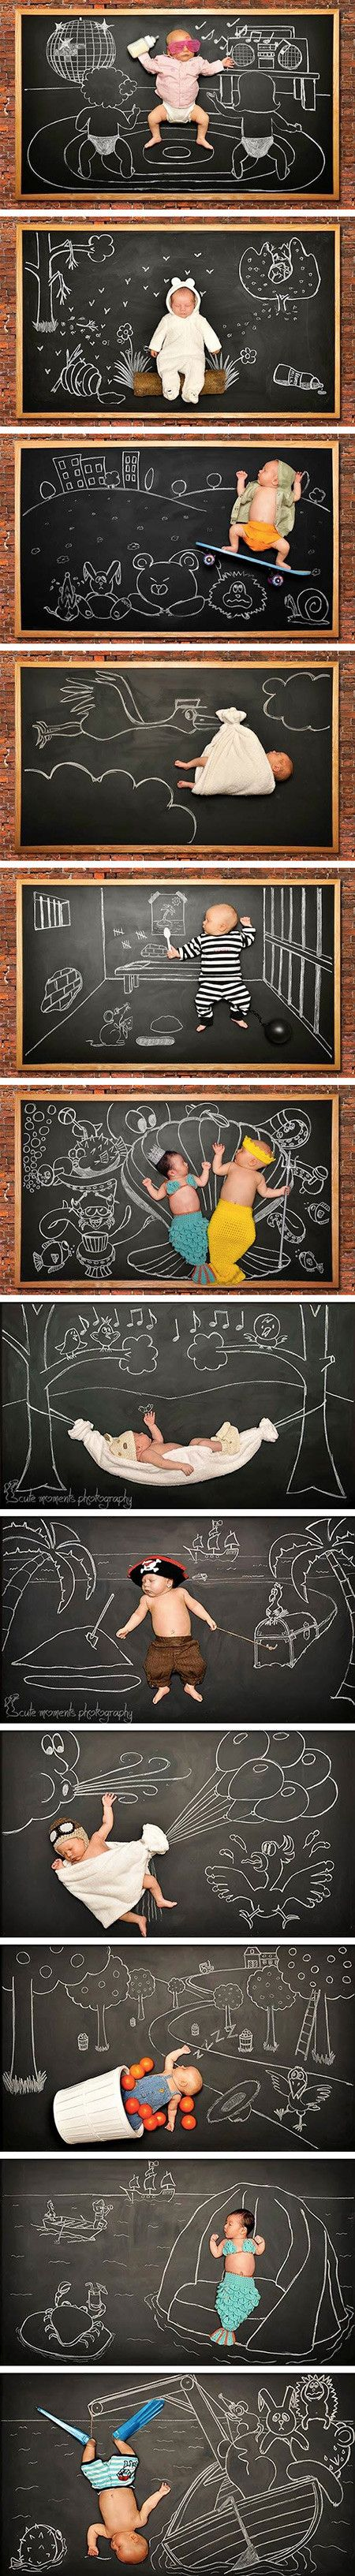 Chalkboard baby photos - I love this....now will I have time to do this??